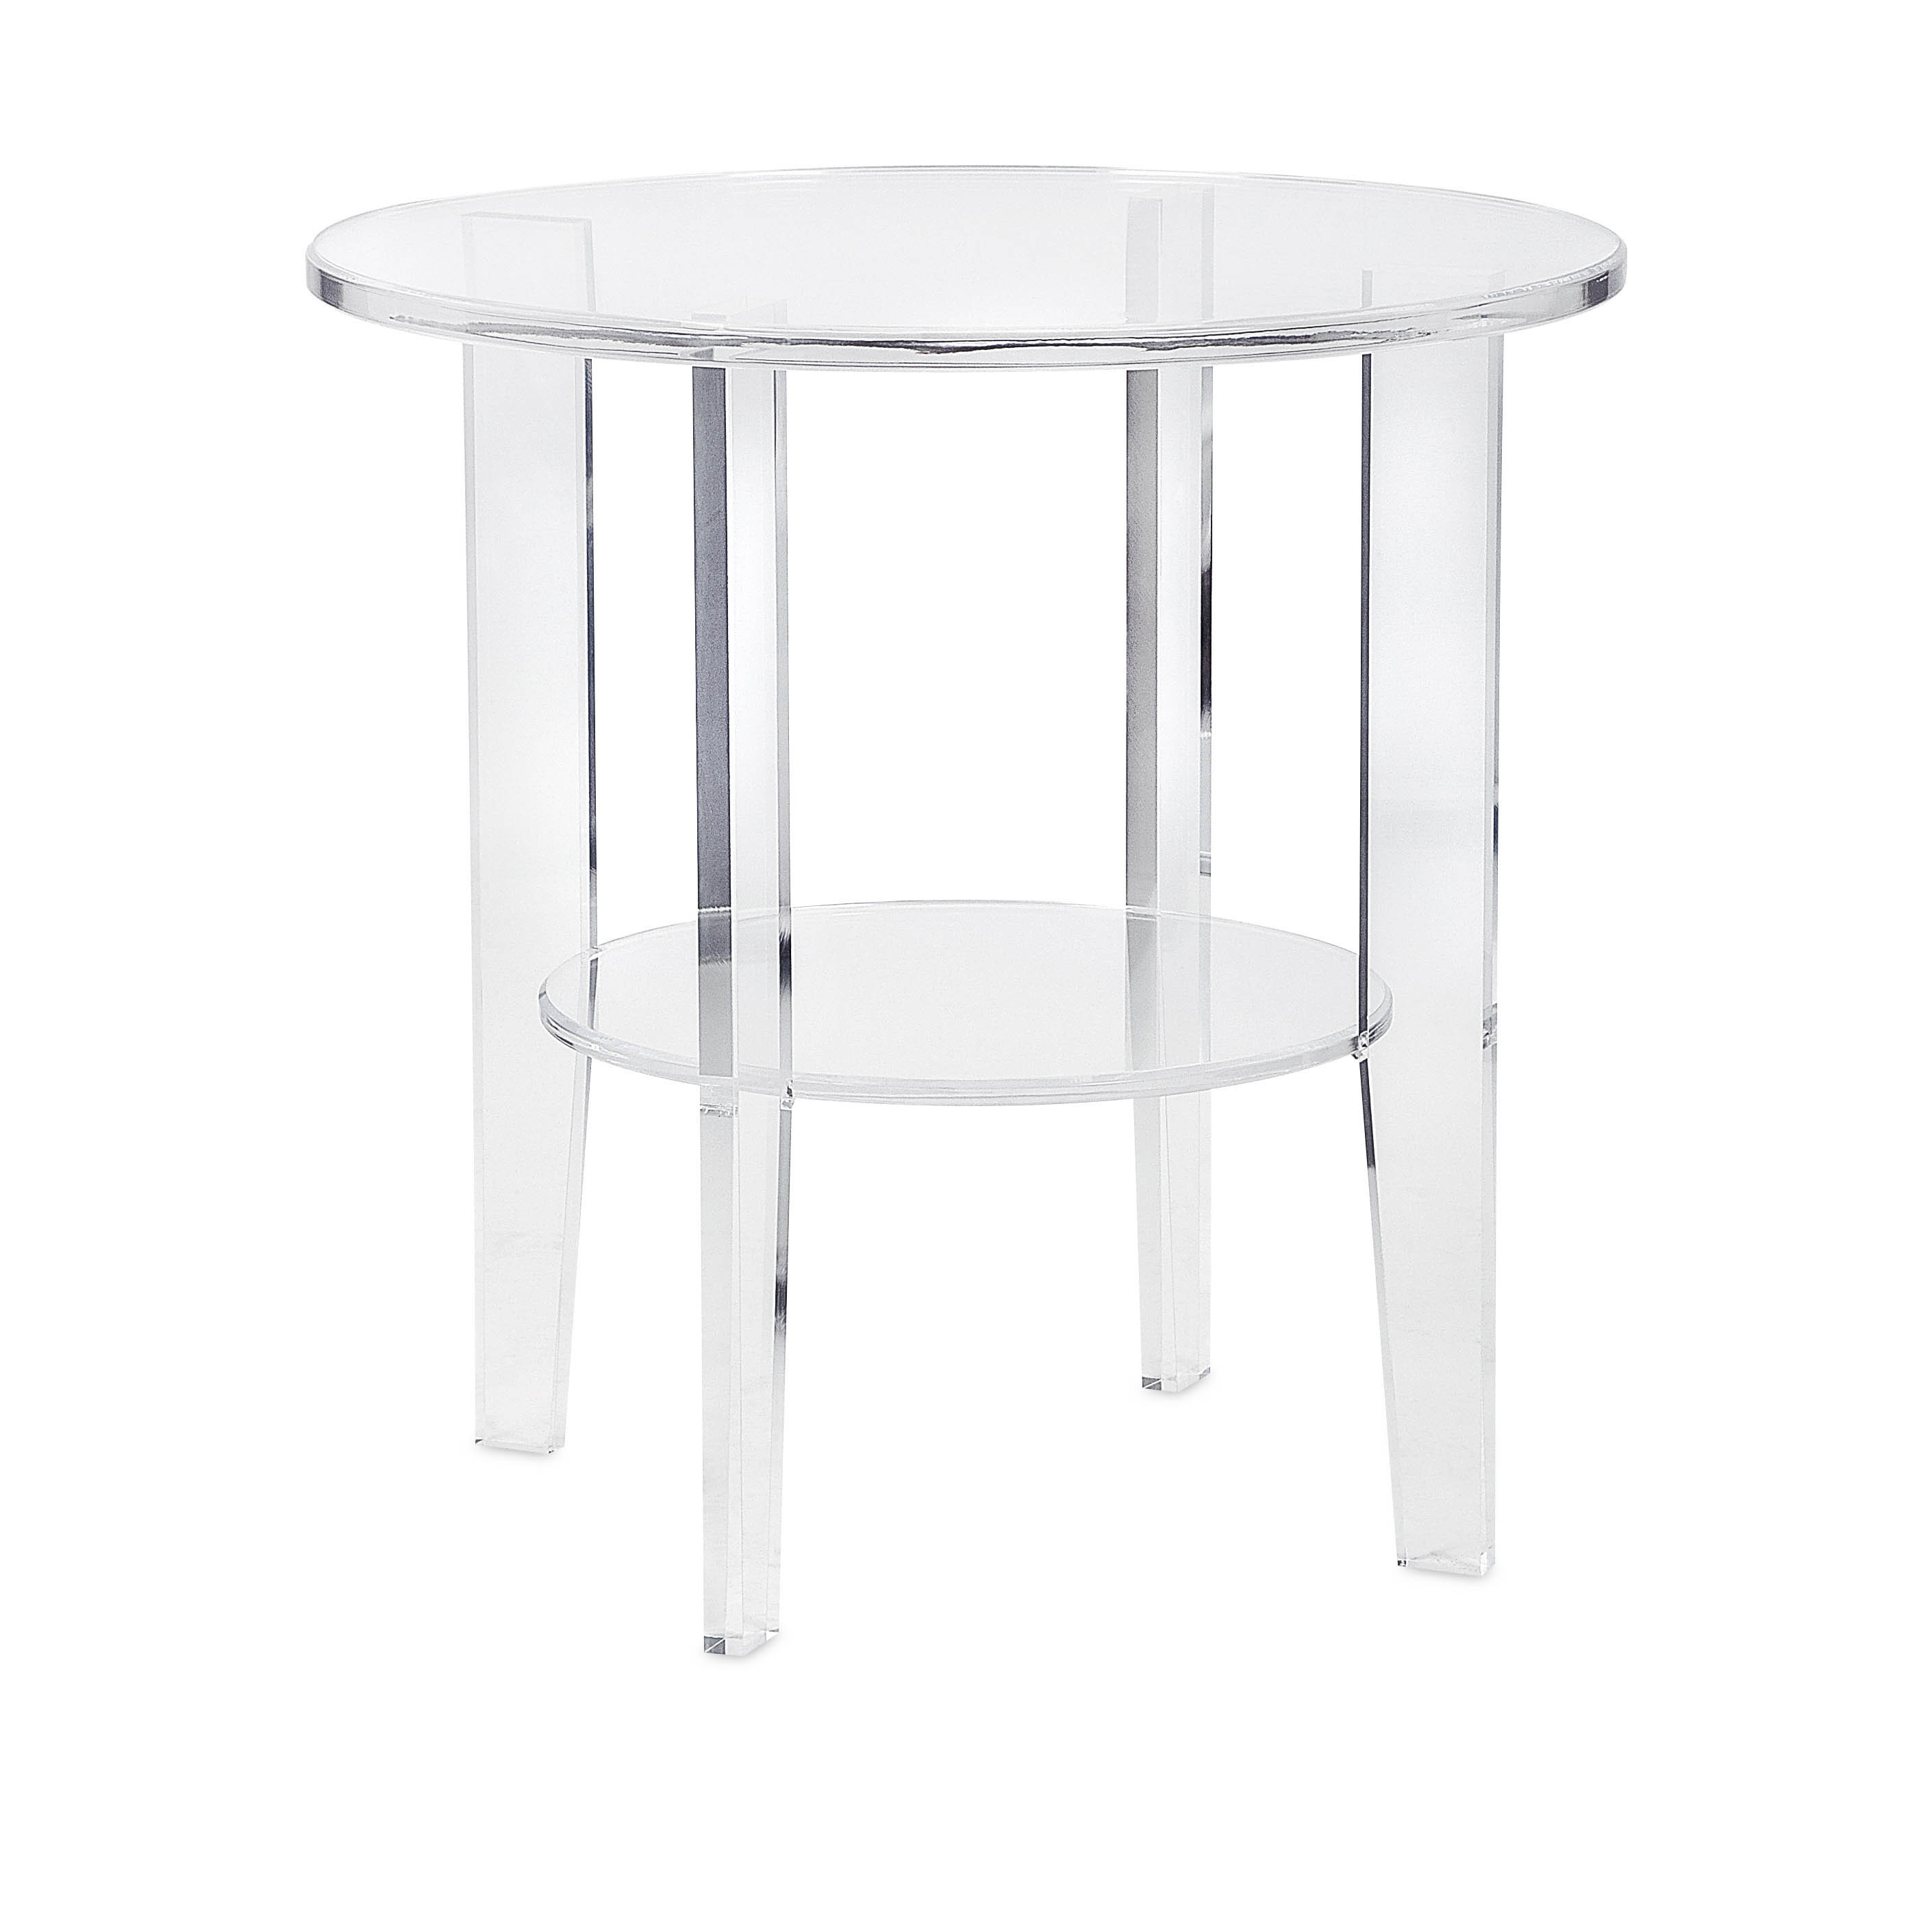 estelle clear frosted acrylic accent table free shipping black today ocean themed lamp shades bar height set covers pottery barn desk wine cube mirror nightstand decorative tables